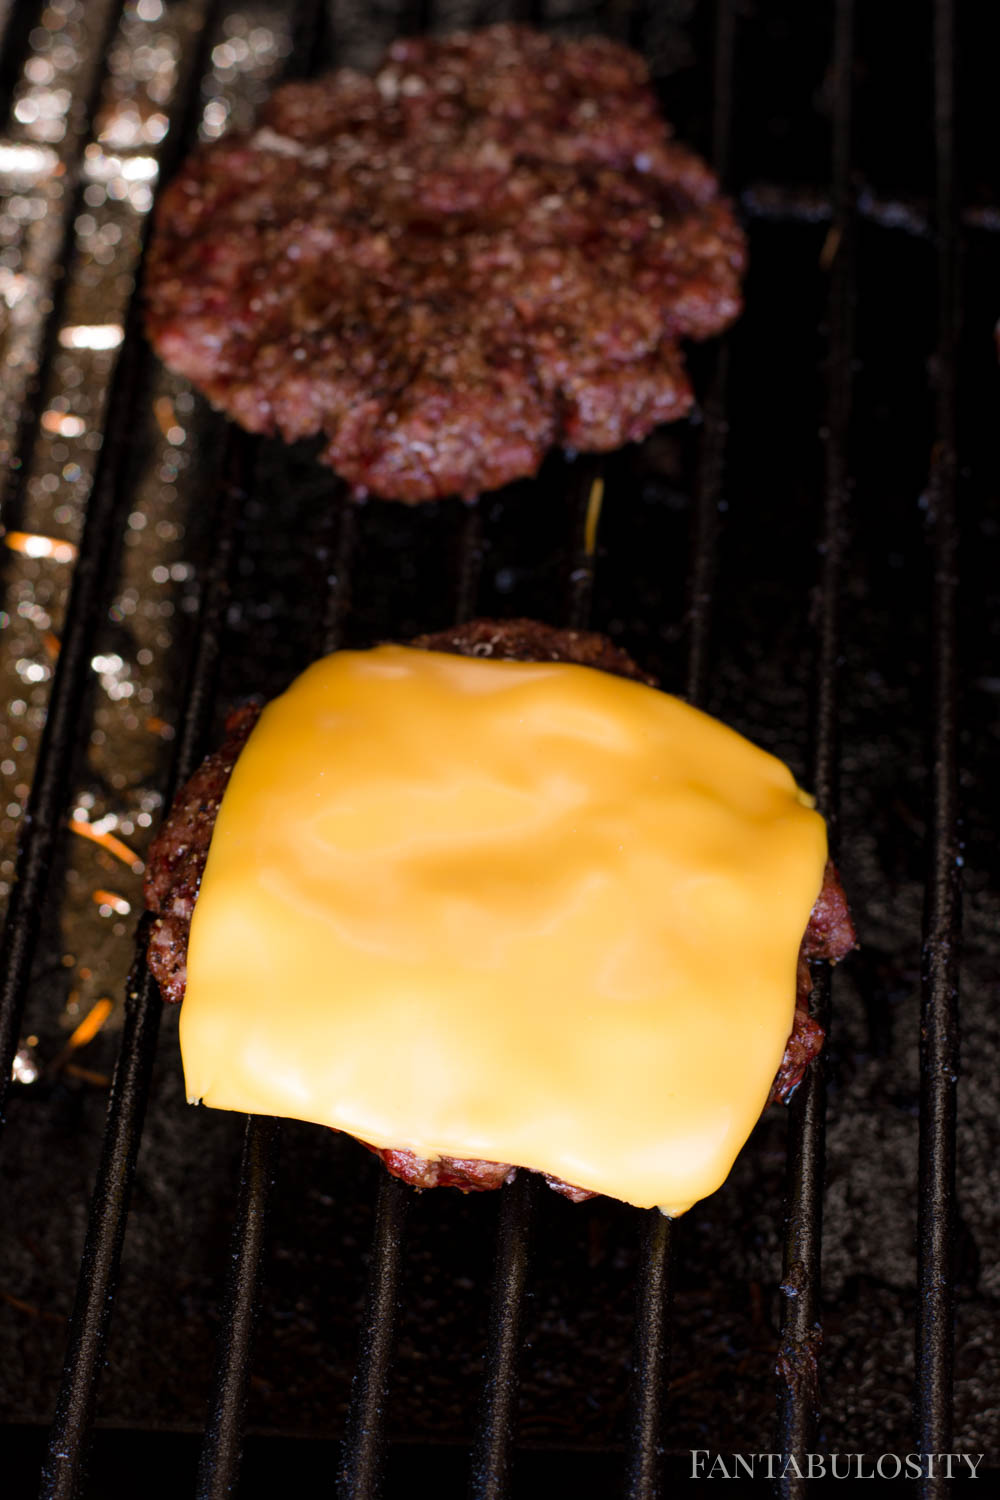 Smoked burgers on the grill - for one hour